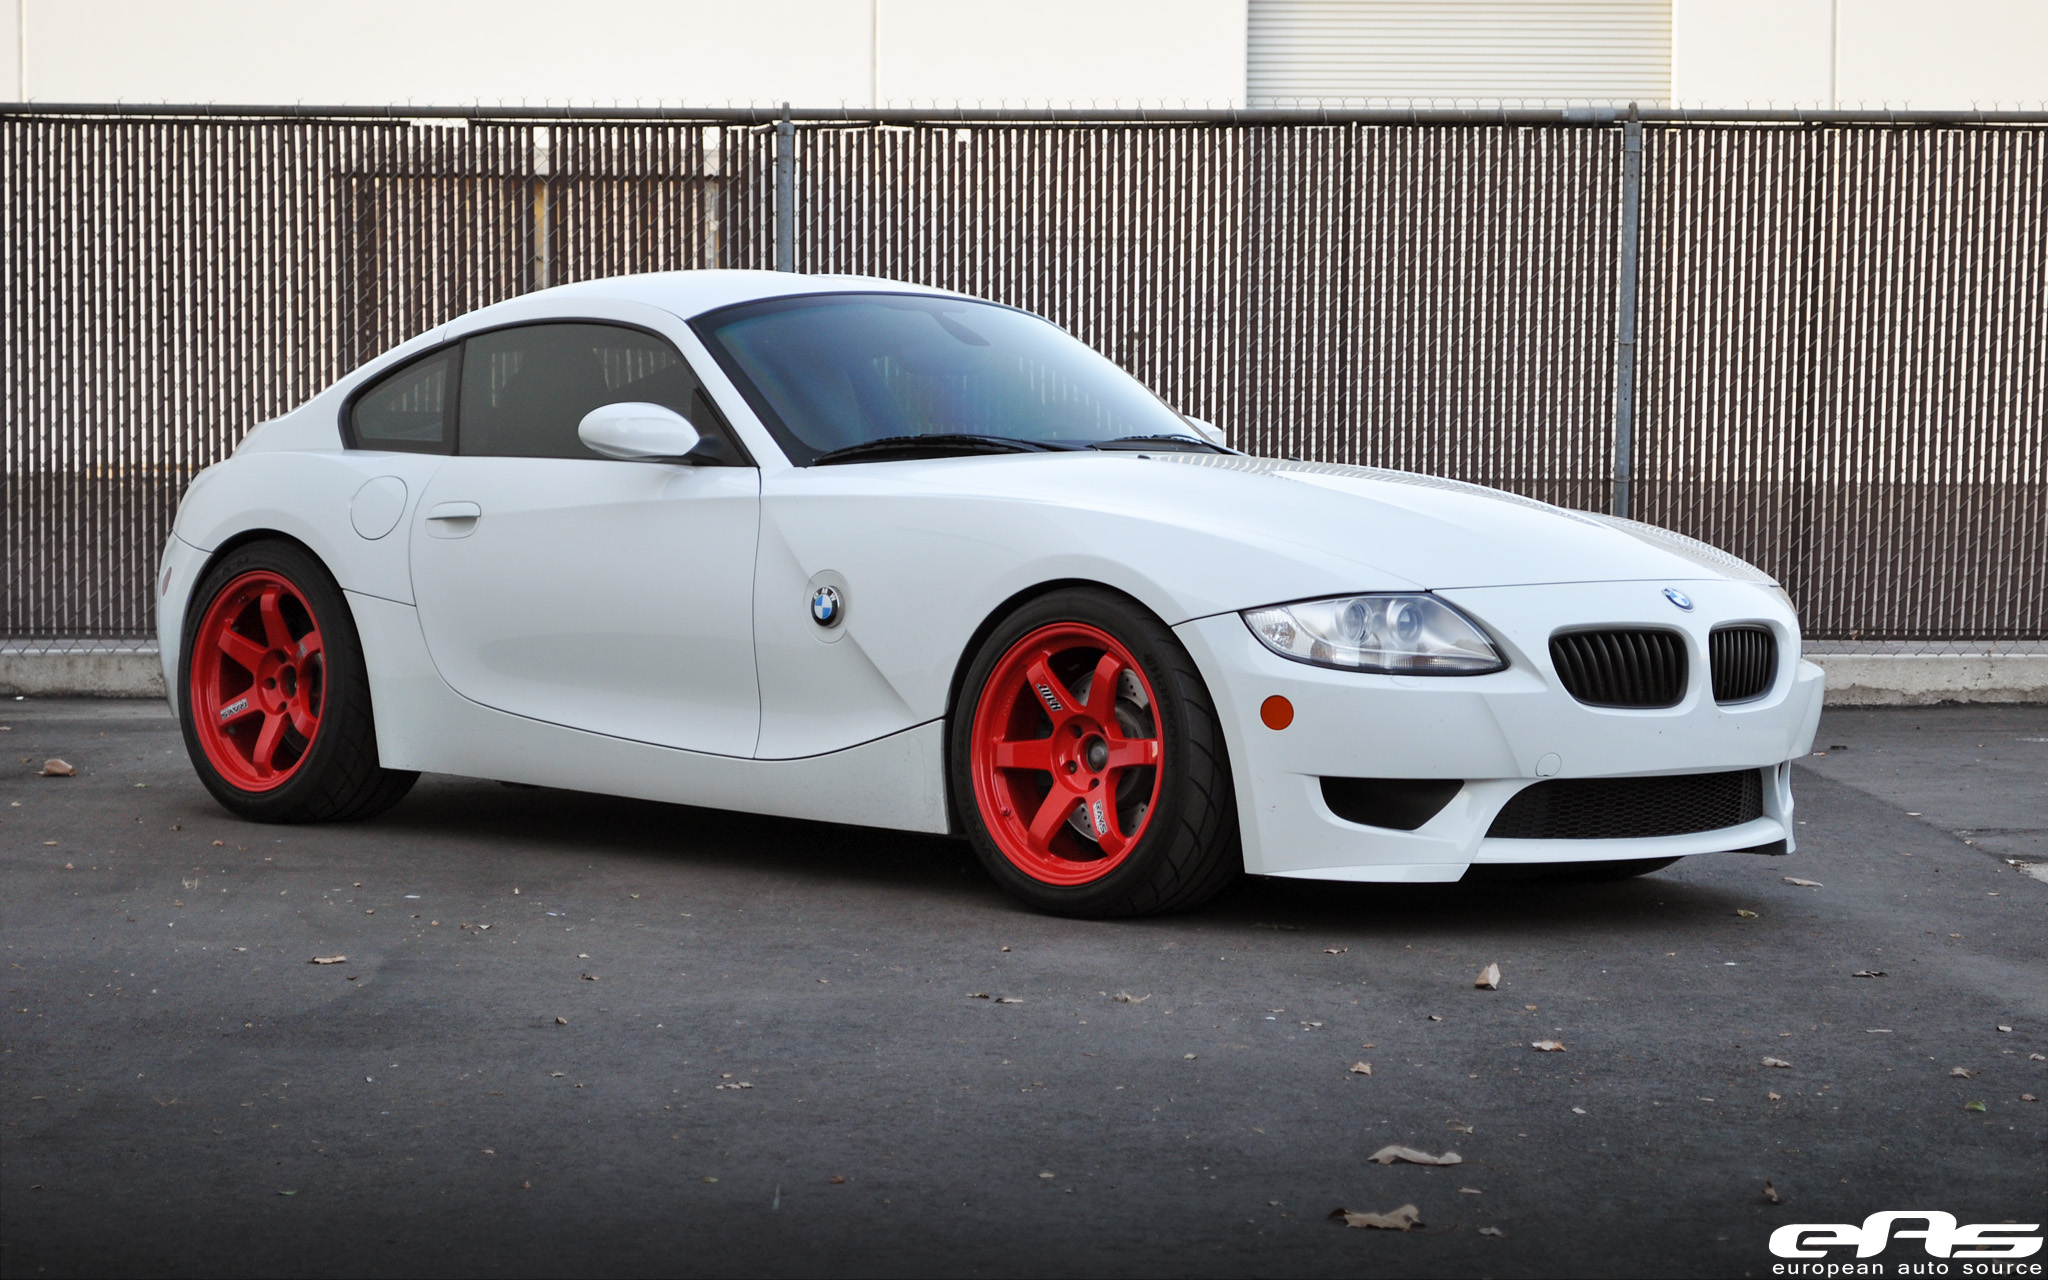 Red Te37sls On Alpine White E86 Z4m Bmw Performance Parts Services 5 Series Is A Color That People Either Love Or Hate Here Are Some Photoshops Showing The Same Wheels In Black For All Haters Out There